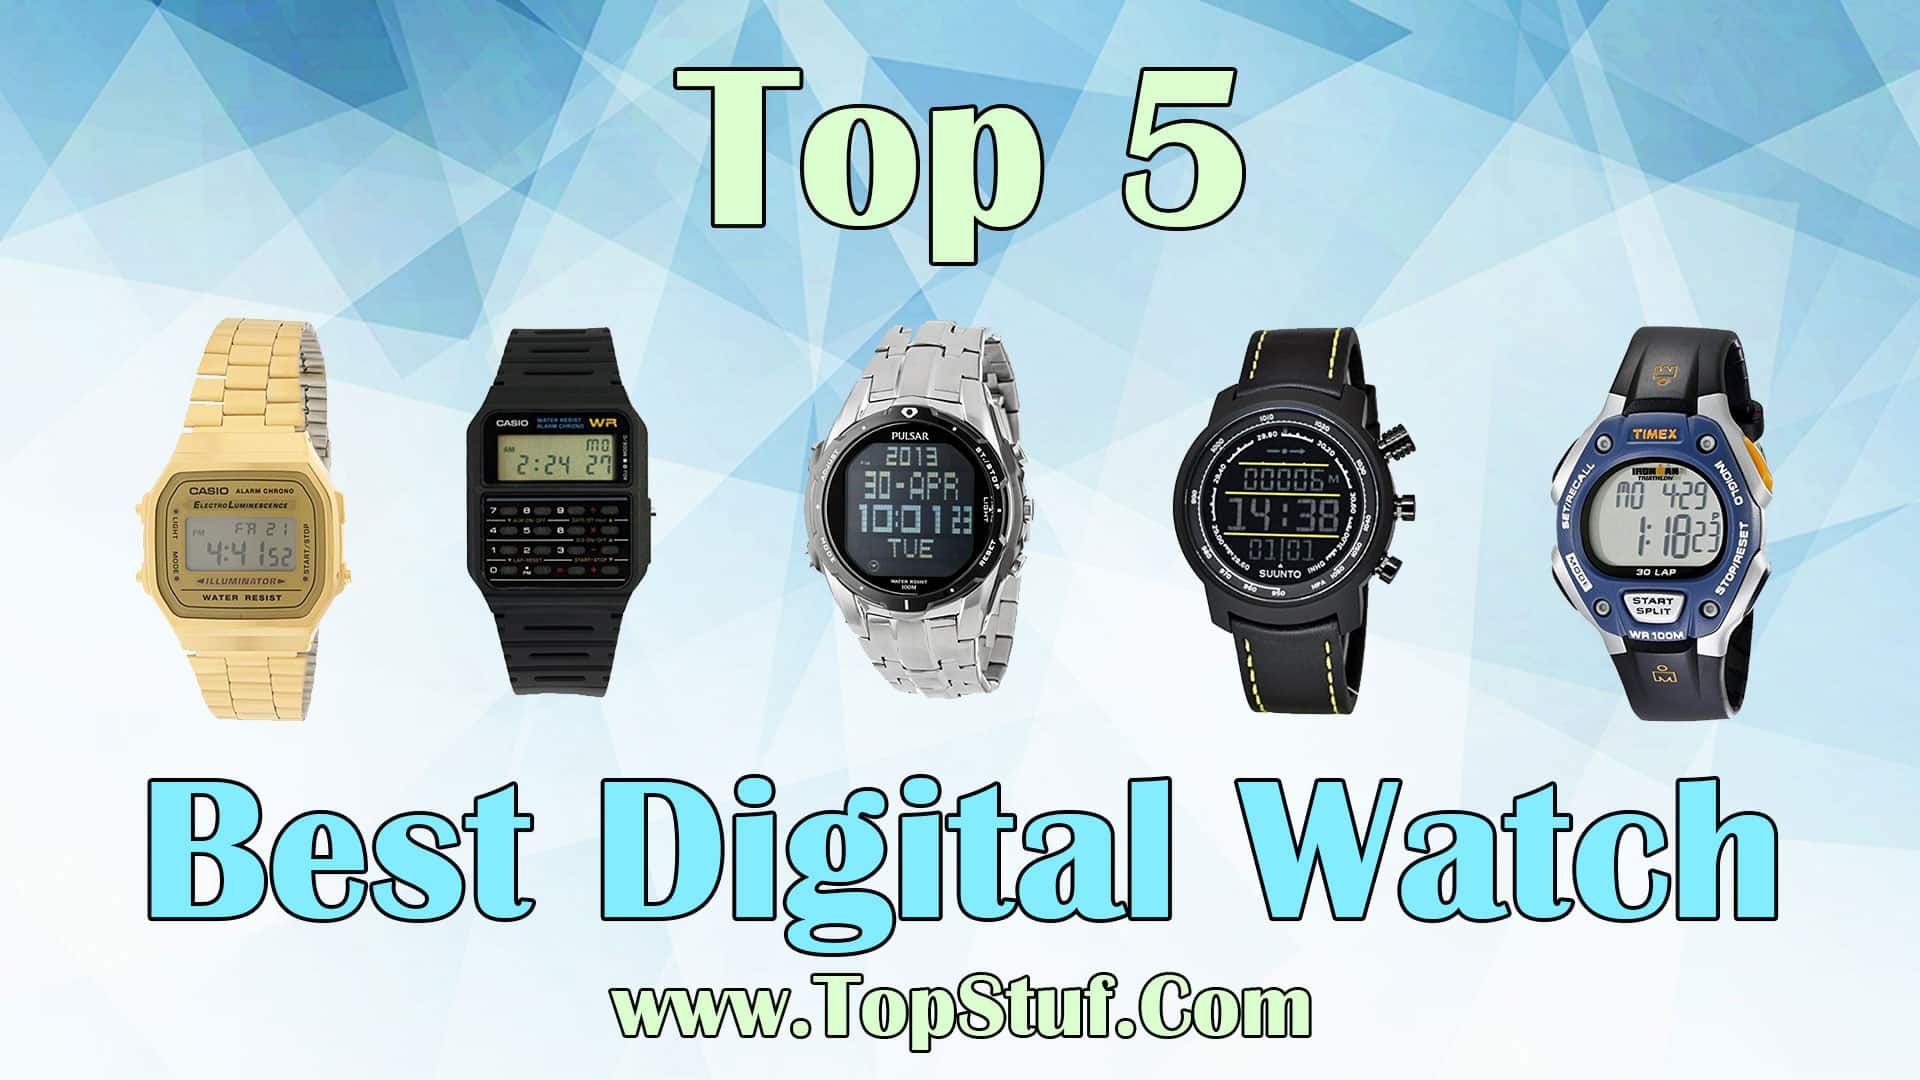 Top 5 Best Digital Watch